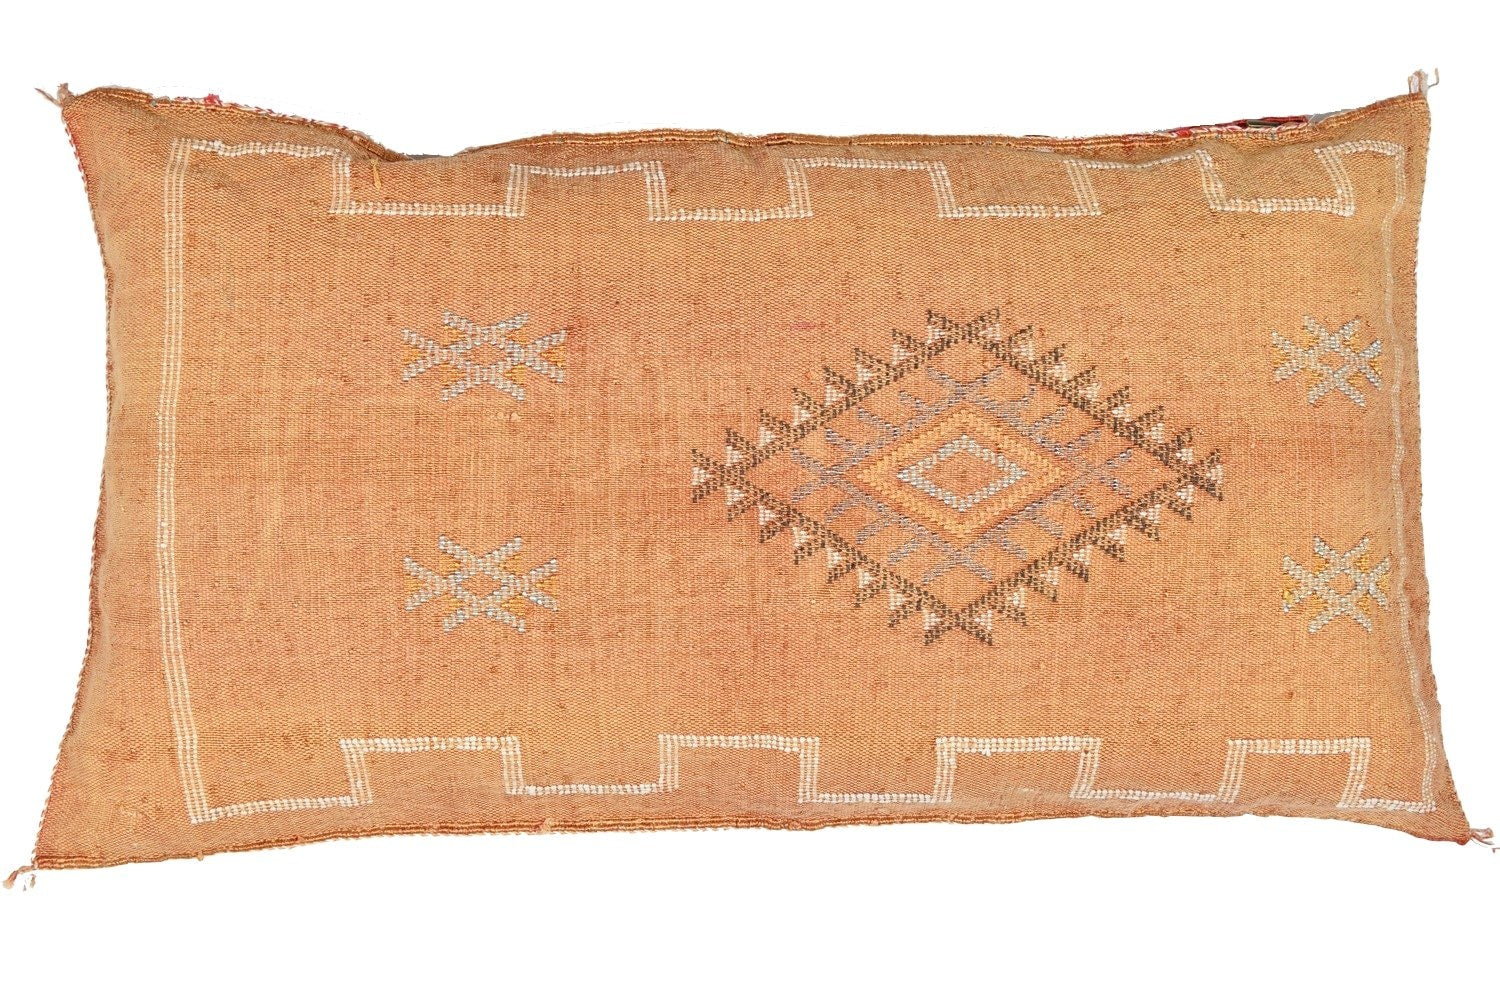 Coussin Orange en soie de cactus - Moroccan Furniture